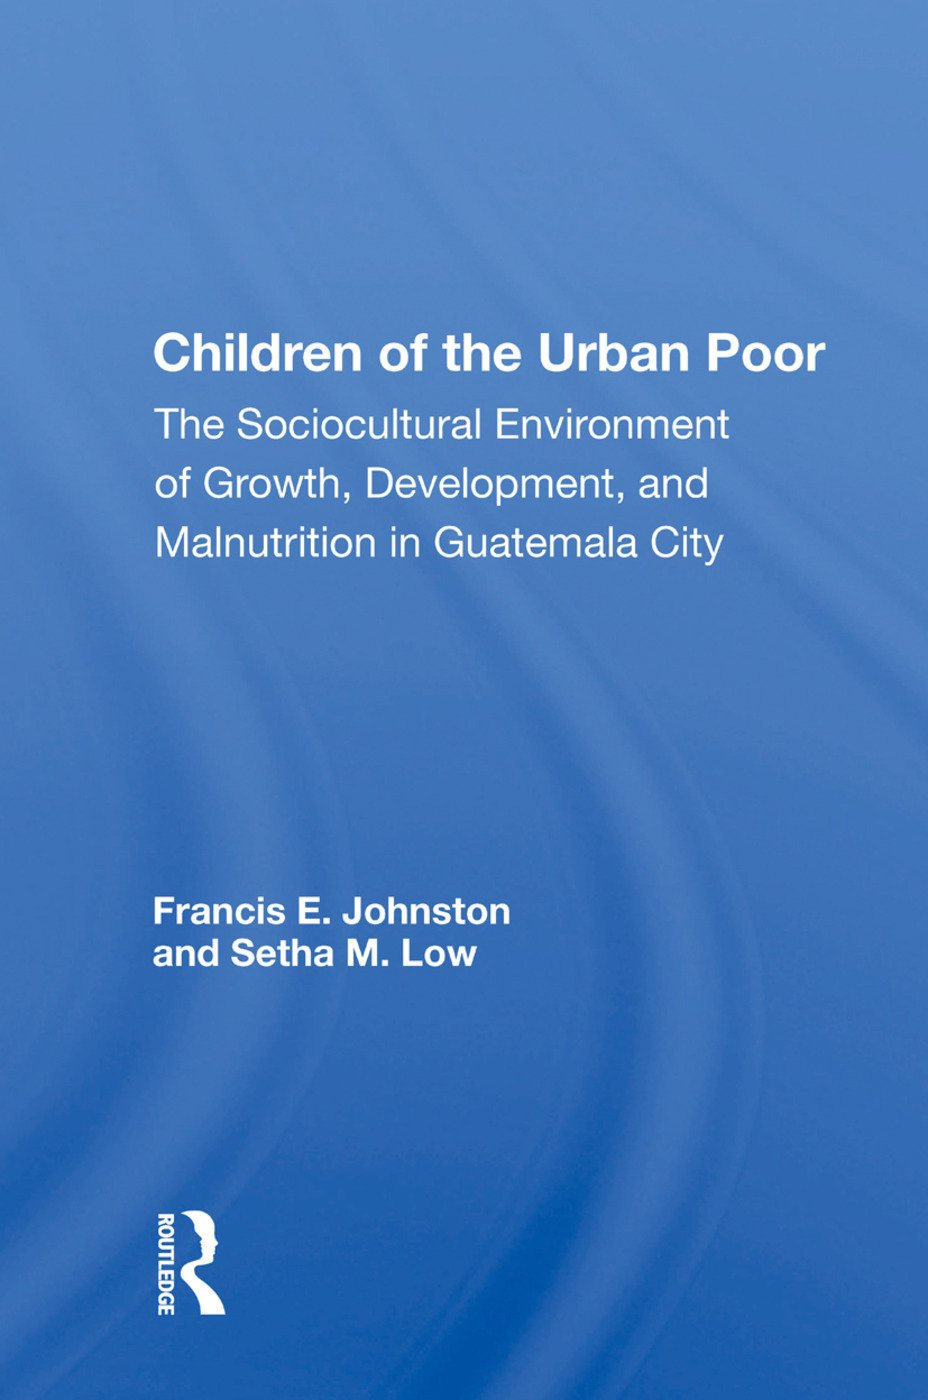 Children of the Urban Poor: The Sociocultural Environment of Growth, Development, and Malnutrition in Guatemala City book cover